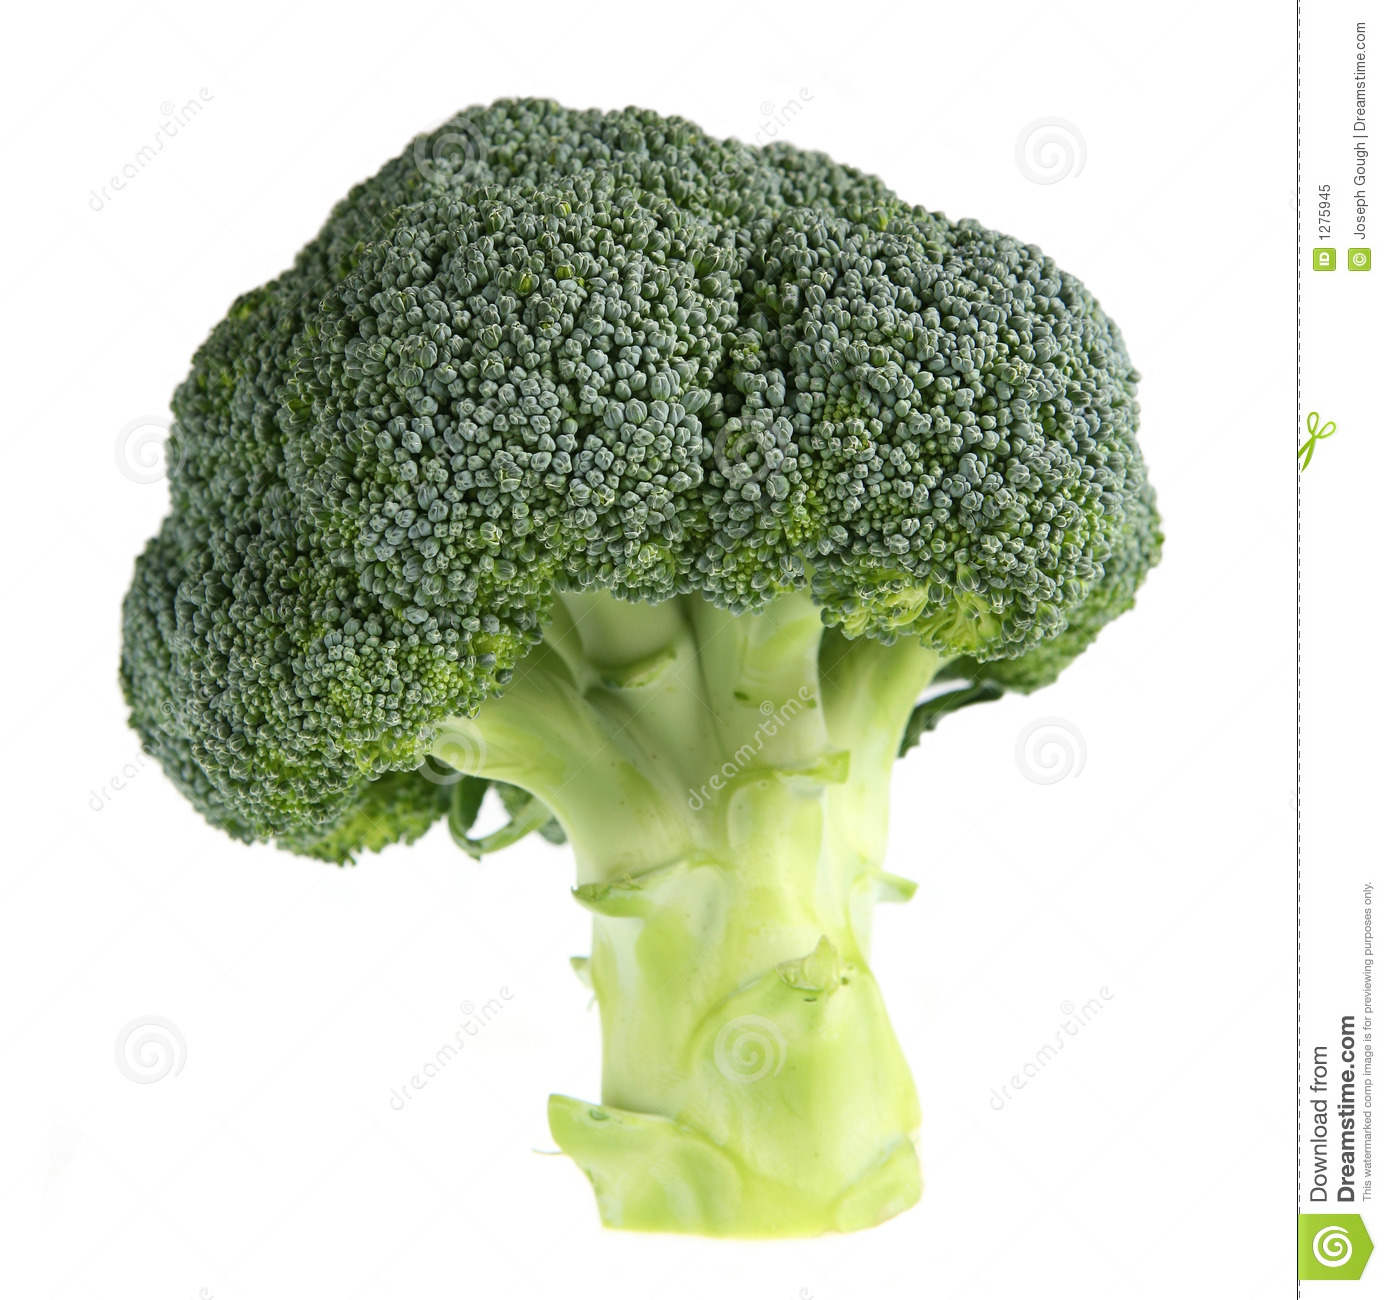 Broccolitree